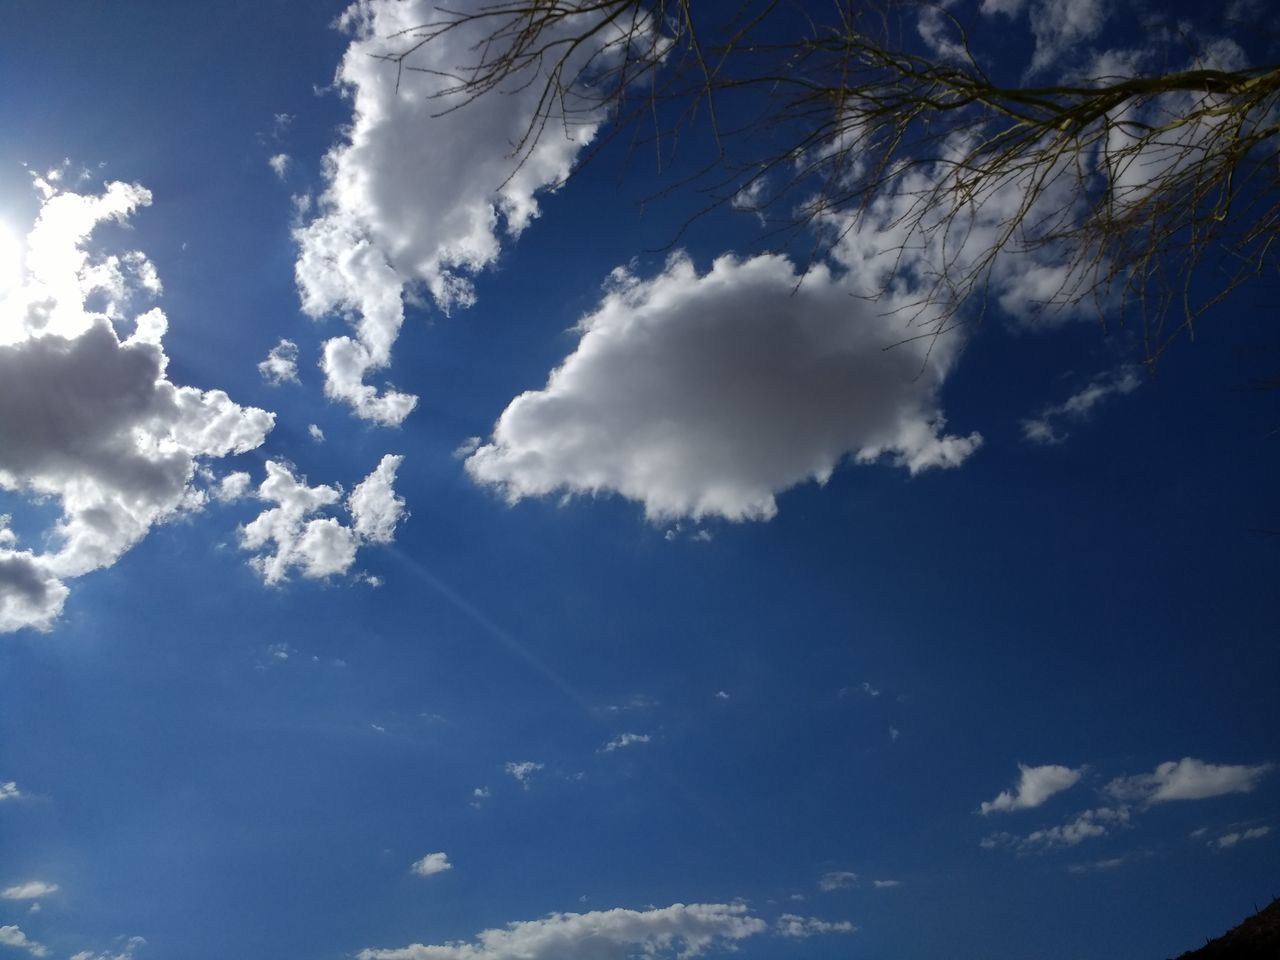 nature, sky, beauty in nature, low angle view, cloud - sky, blue, scenics, tranquility, day, backgrounds, sky only, tranquil scene, no people, outdoors, sunlight, full frame